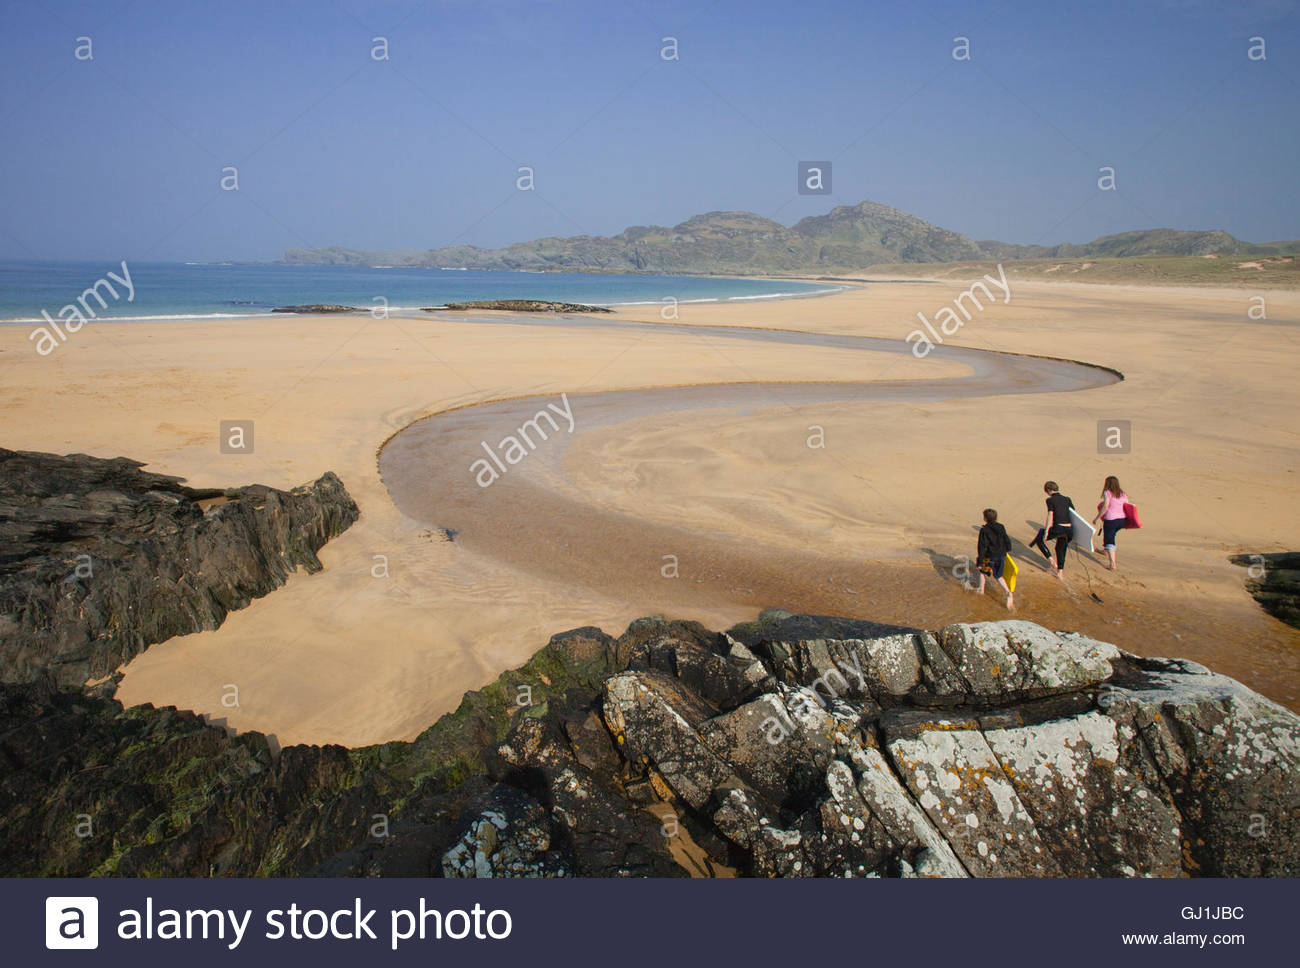 Children bodyboarding at Kiloran Bay, Isle of Colonsay, Inner Hebrides, Scotland. - Stock Image